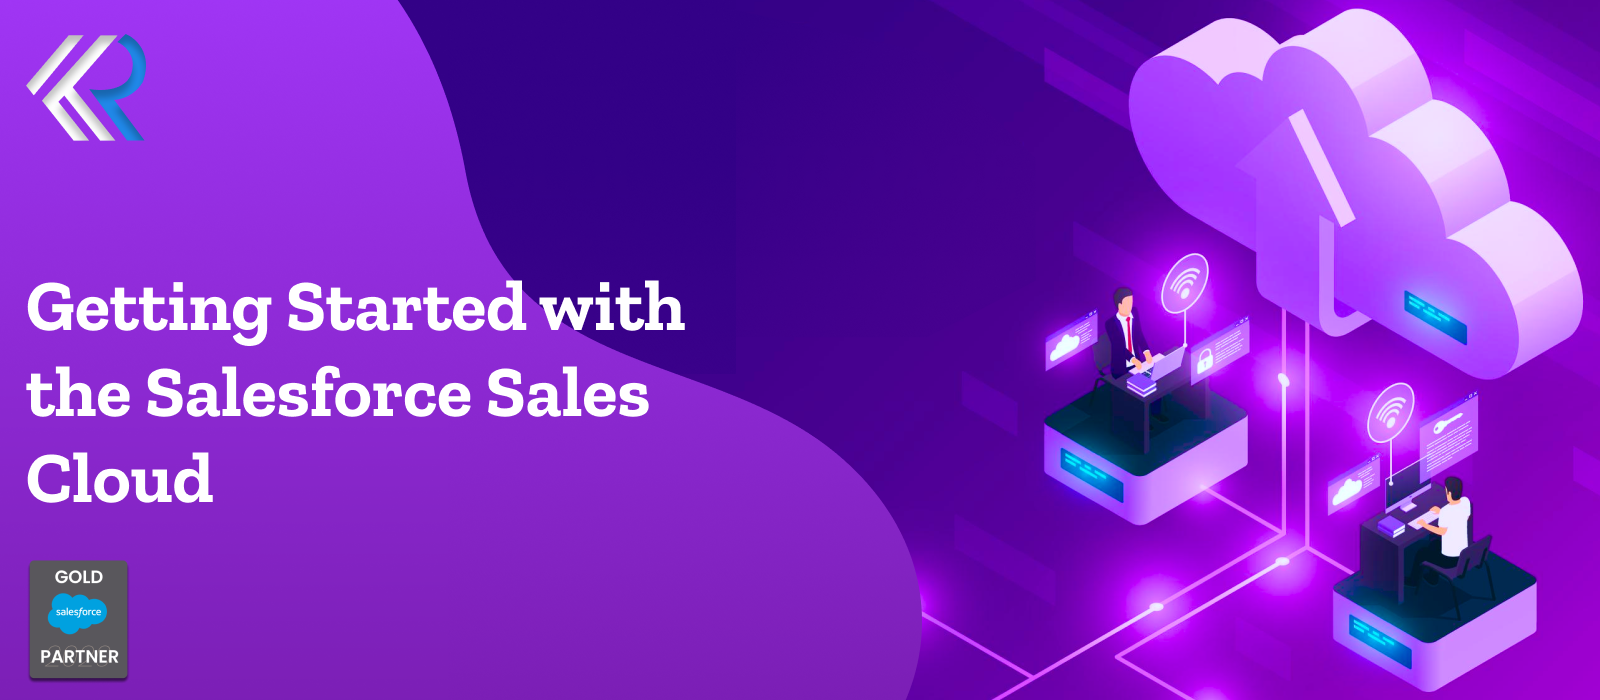 Getting Started with Salesforce Sales cloud